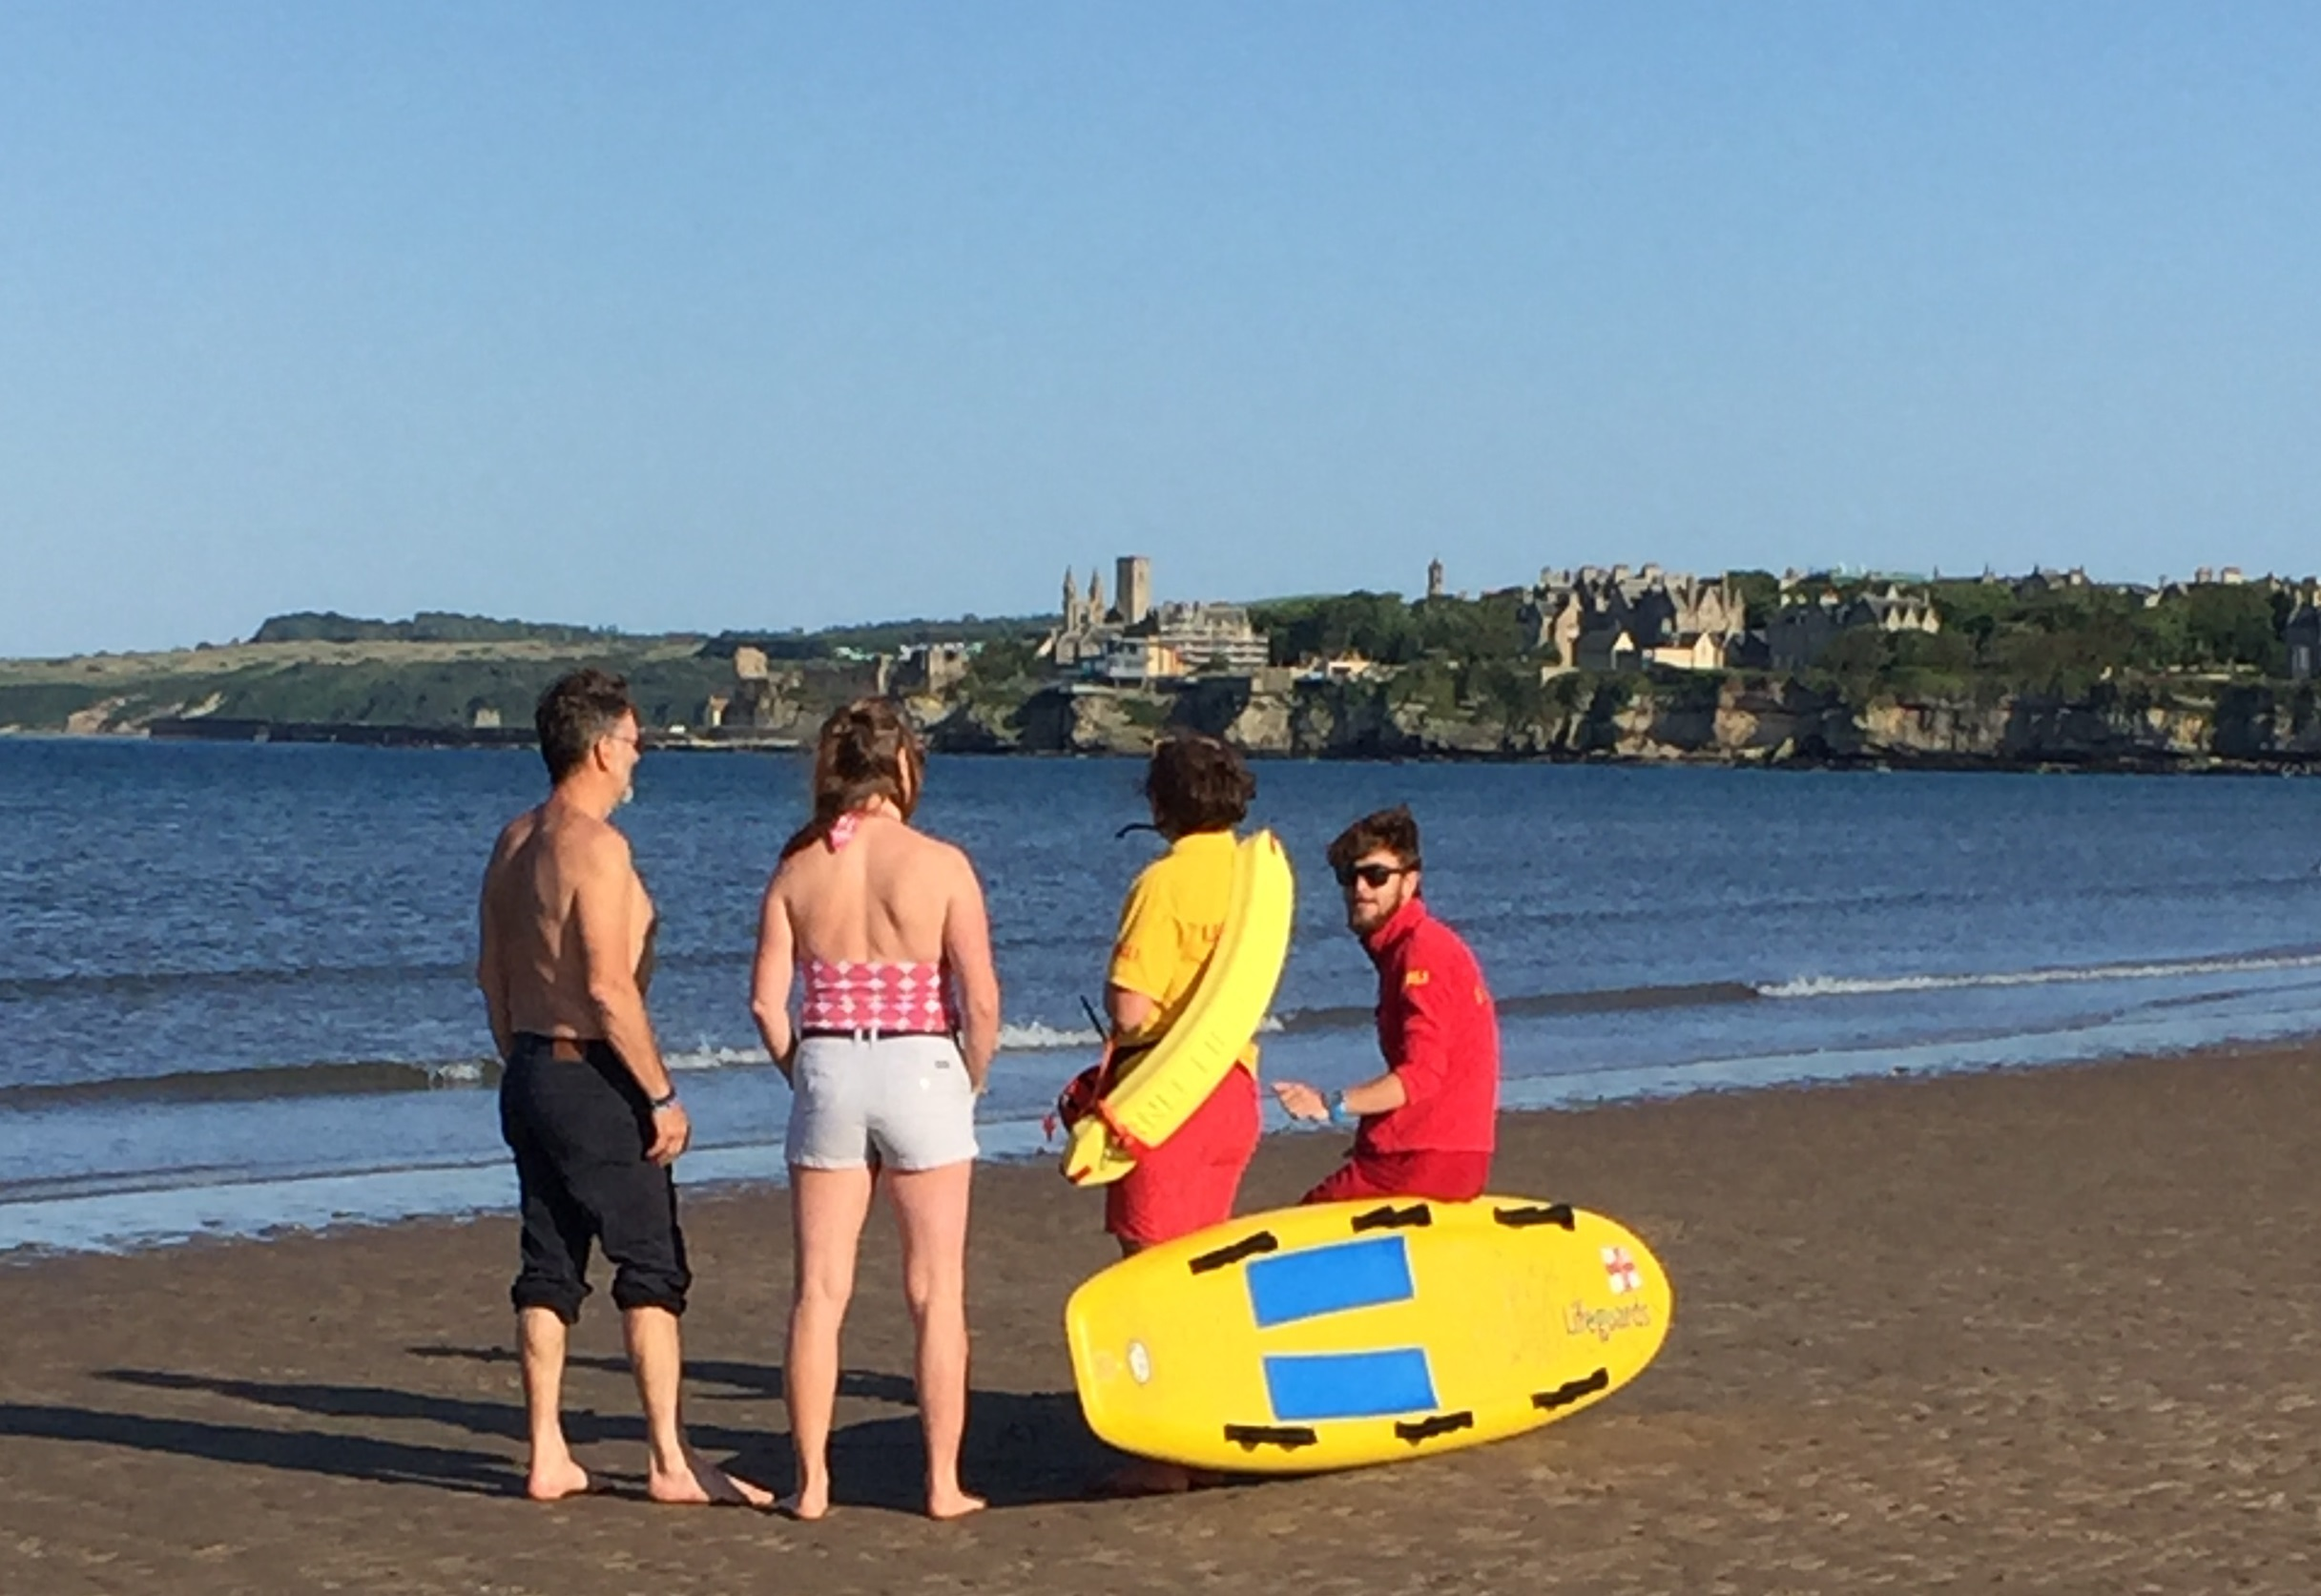 St Andrews Lifeguards on the beach during the incident.